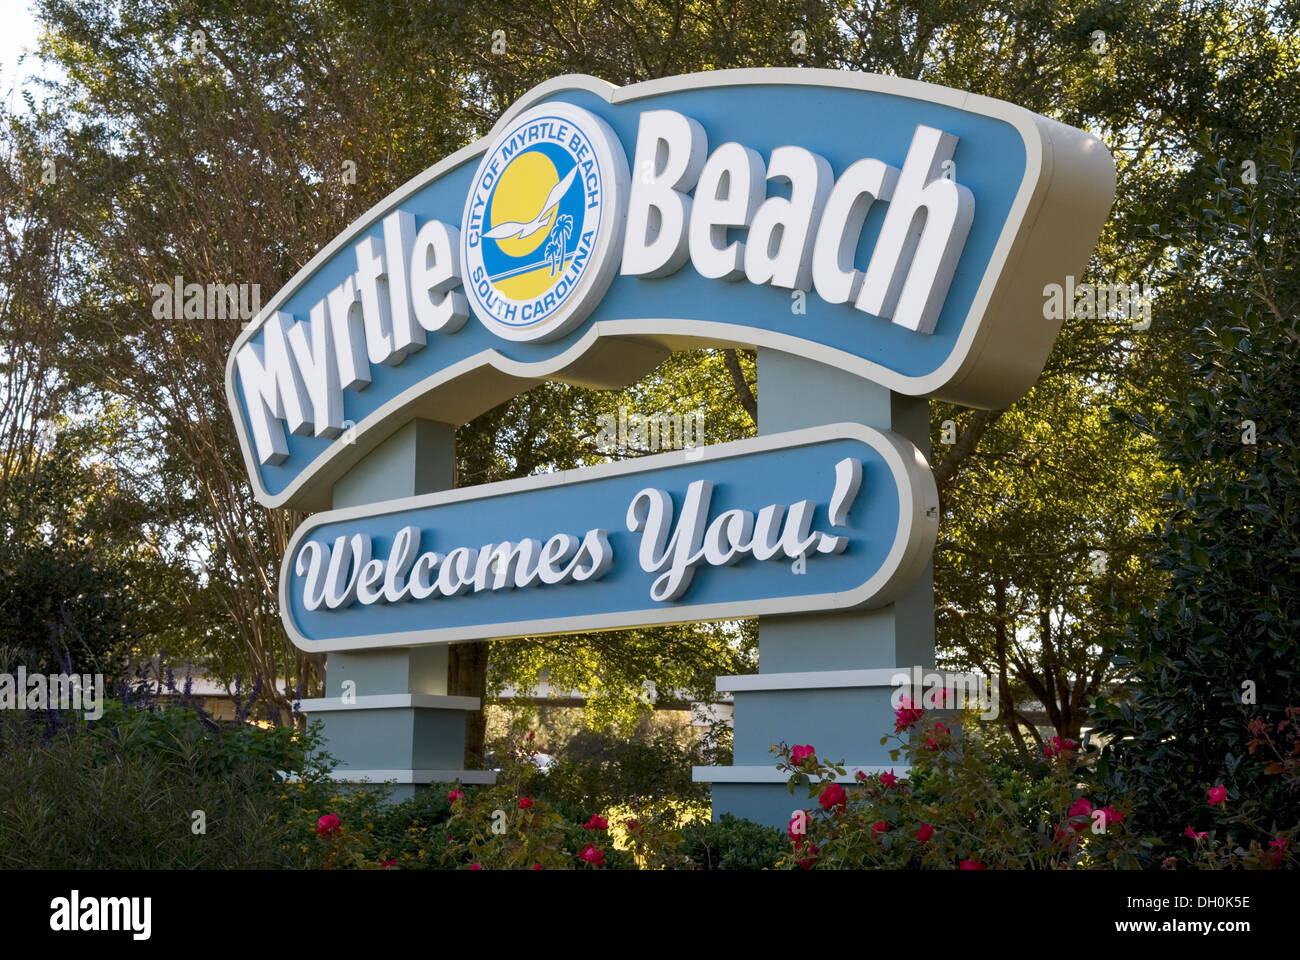 Myrtle Beach Welcome Sign South Carolina USA Stock Photo 62095306